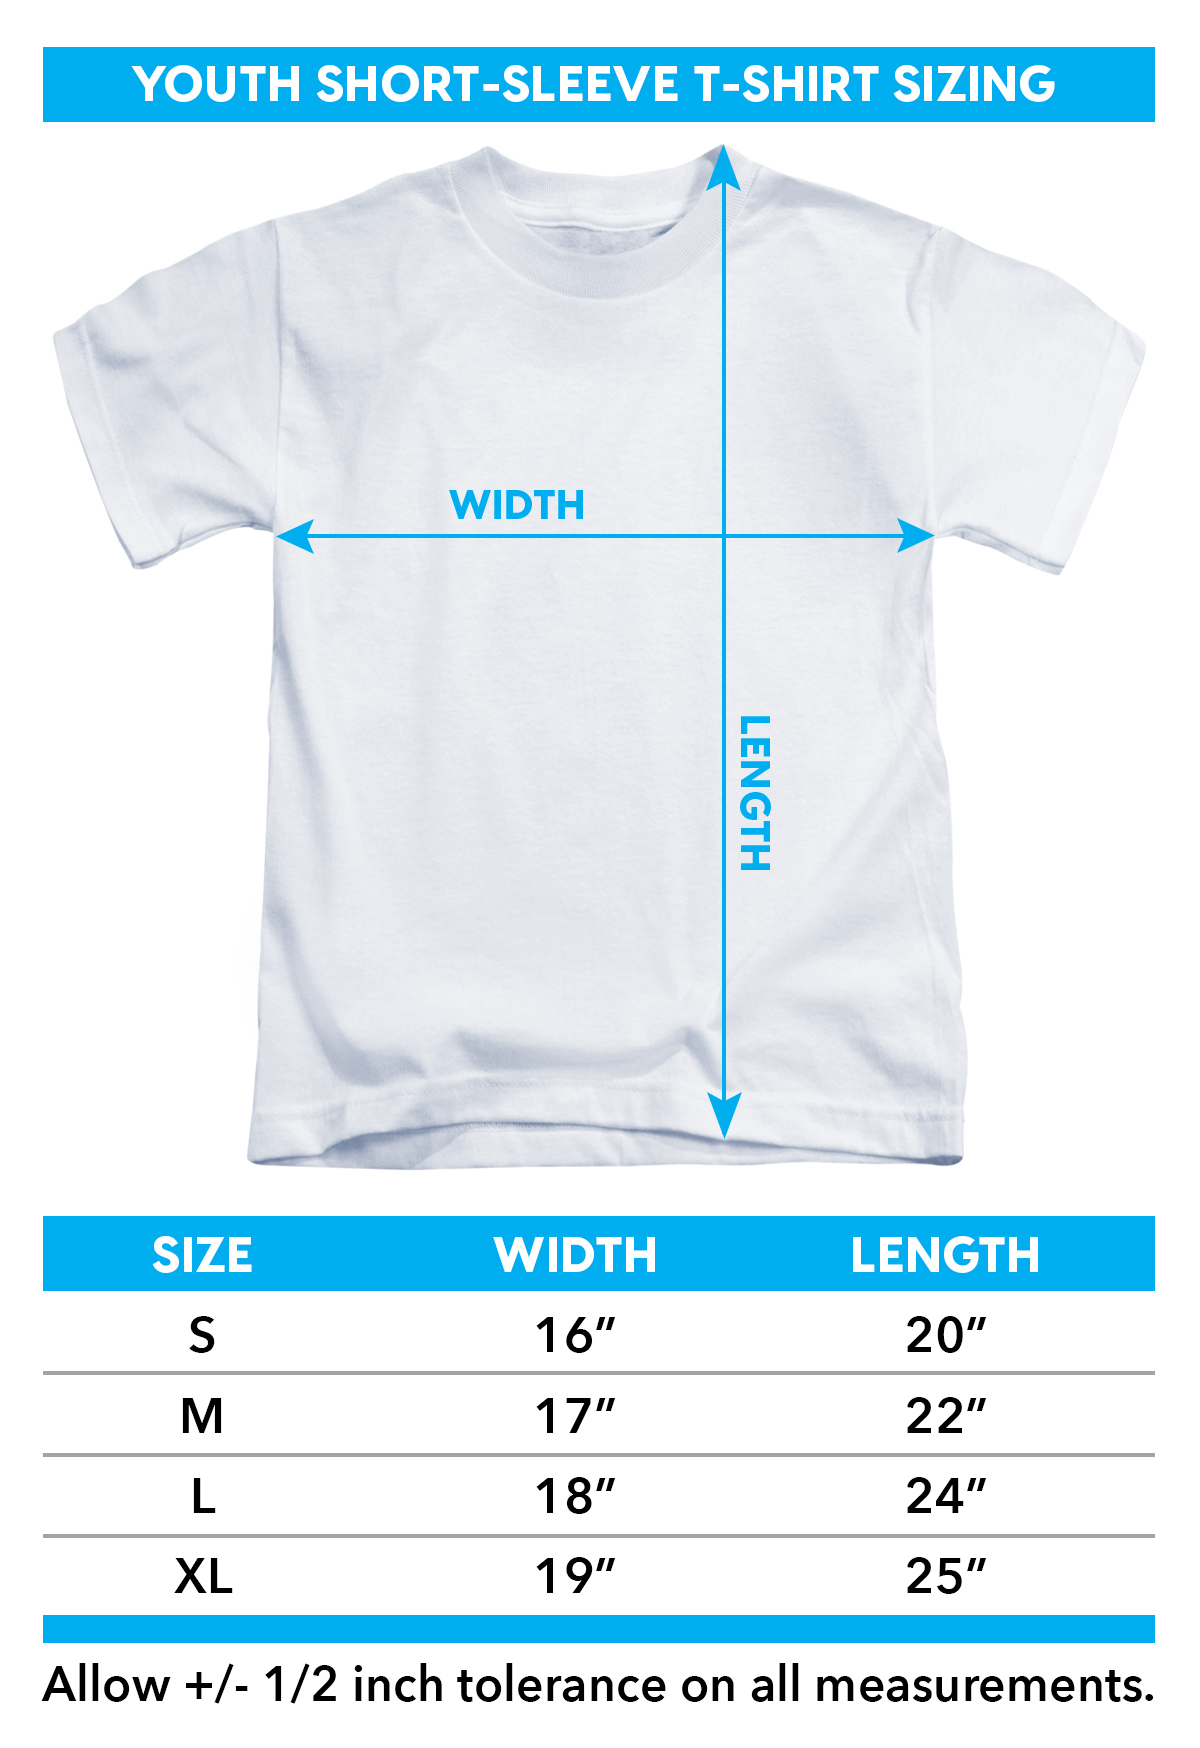 Sizing chart for Aquaman Movie Youth T-Shirt - Trident TRV-AQUA102-YT